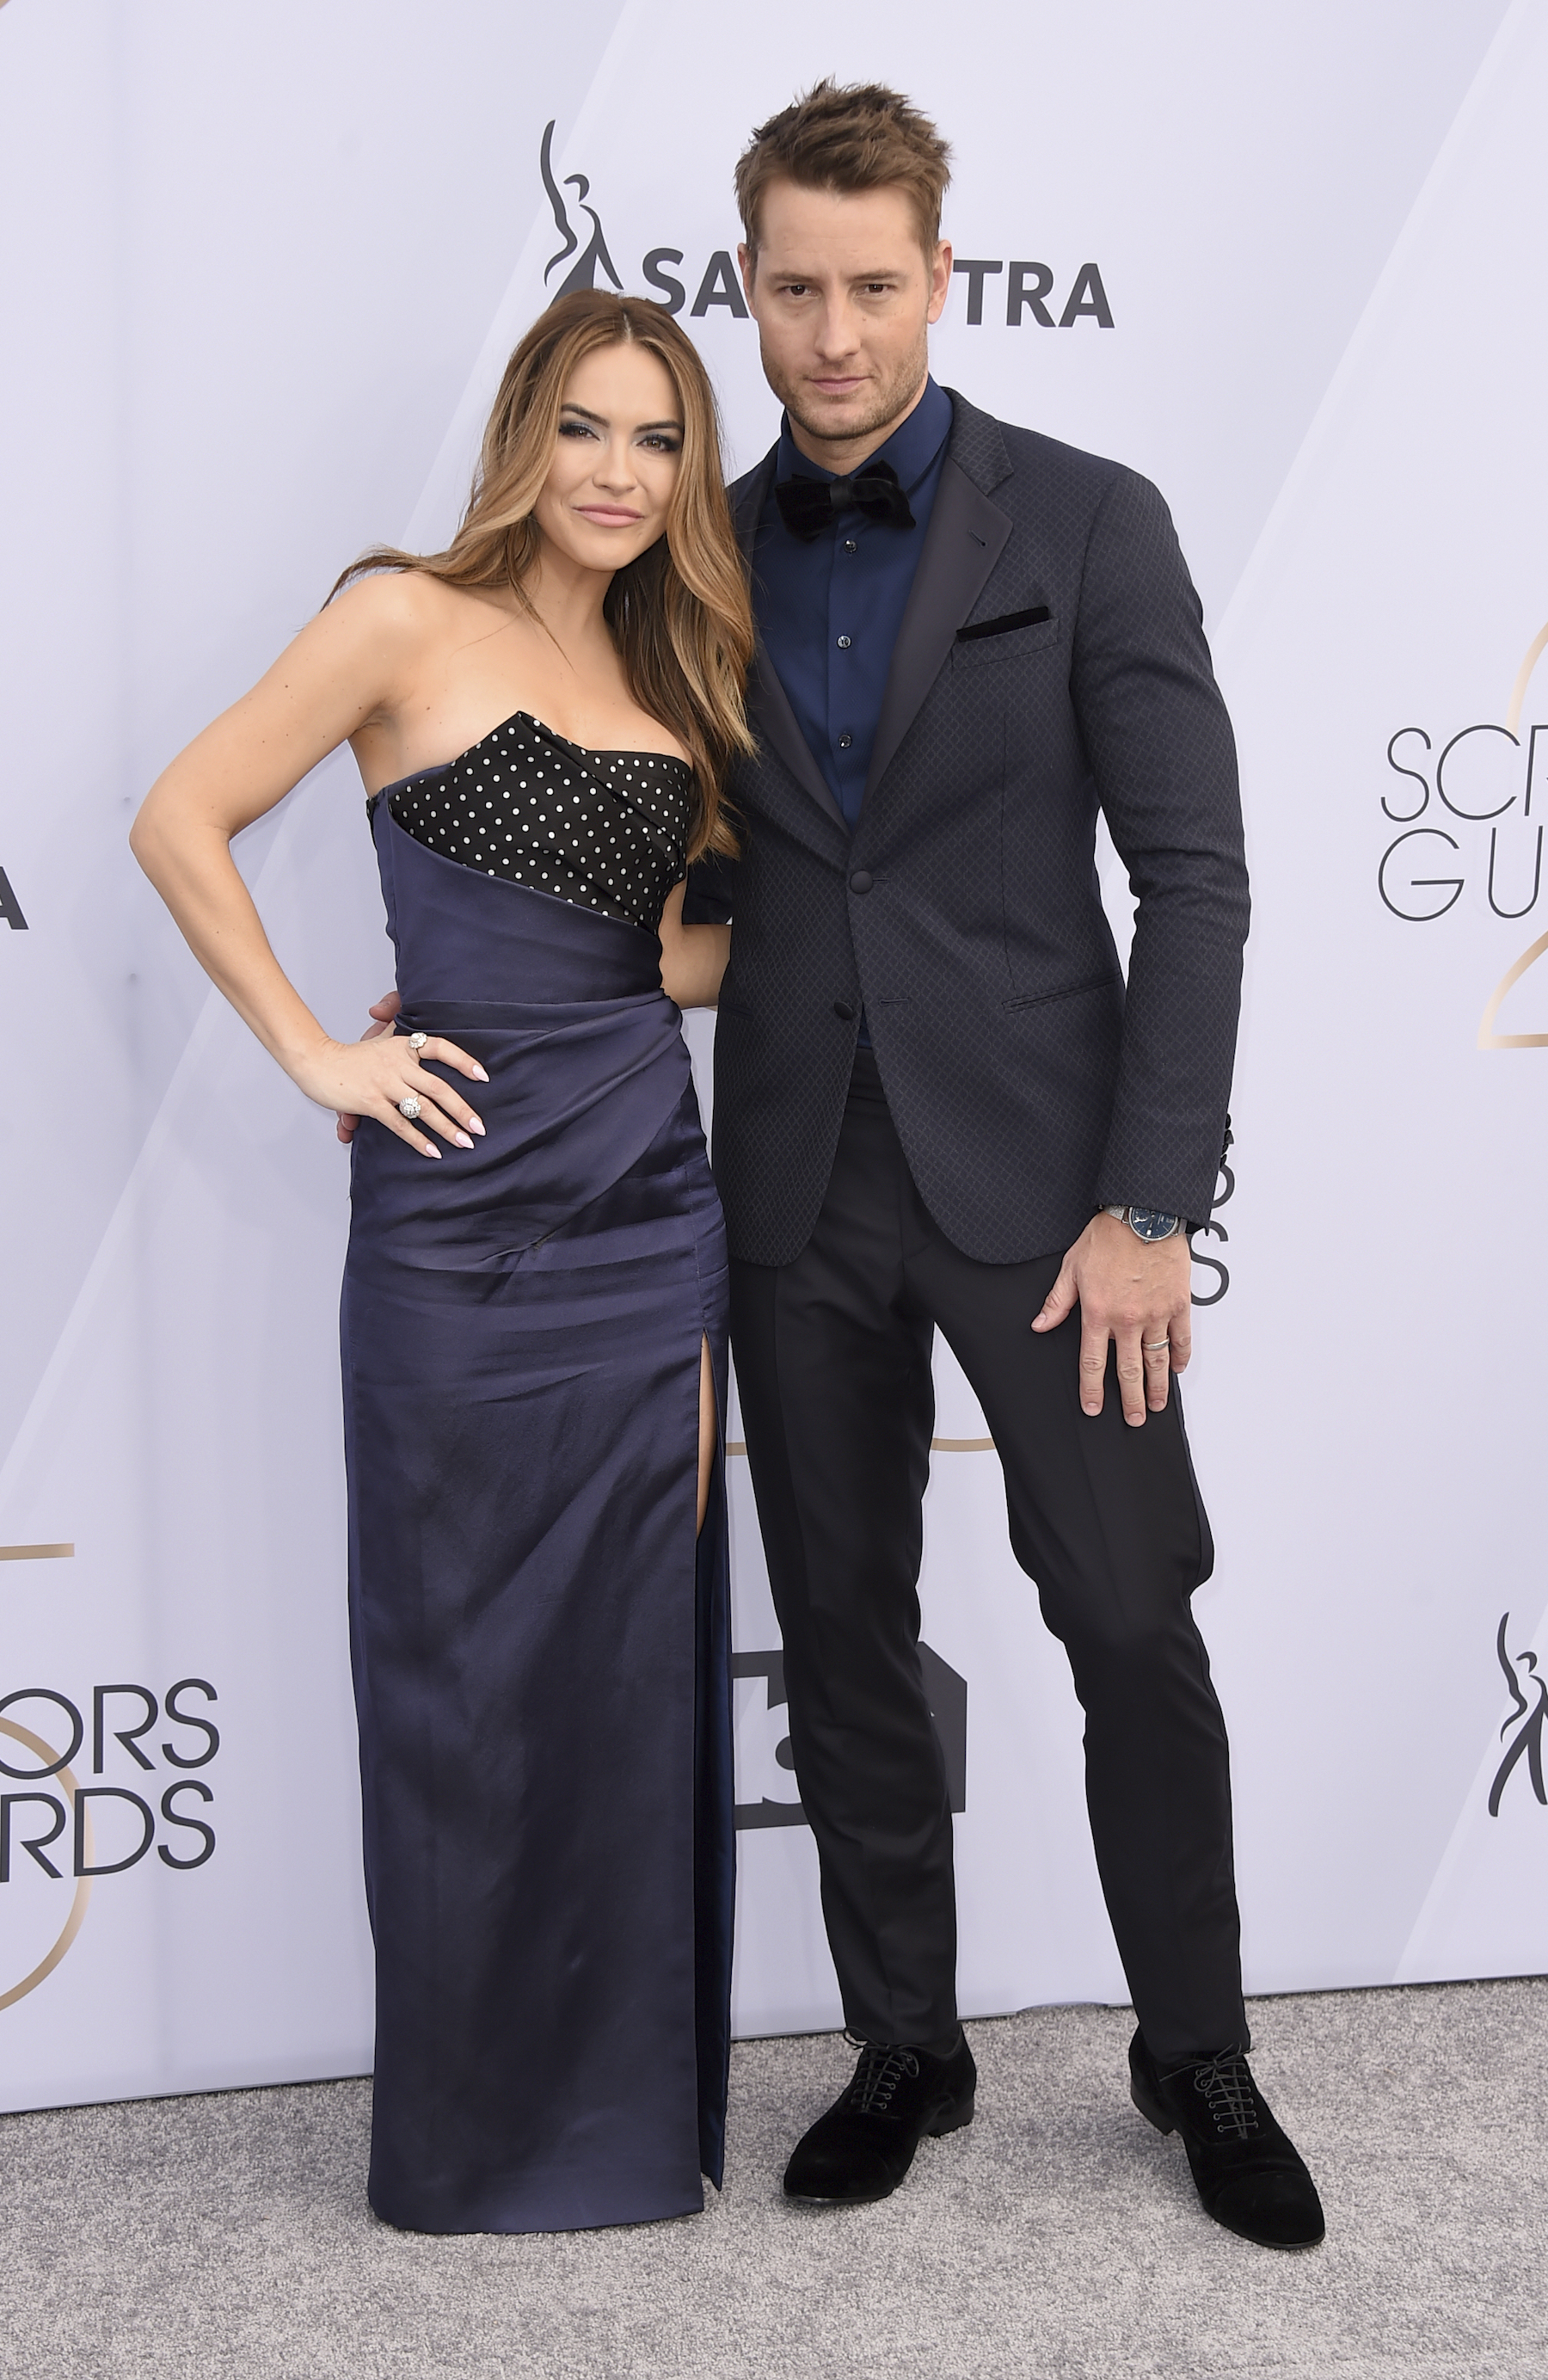 <div class='meta'><div class='origin-logo' data-origin='AP'></div><span class='caption-text' data-credit='Jordan Strauss/Invision/AP'>Chrishell Stause, left, and Justin Hartley arrive at the 25th annual Screen Actors Guild Awards at the Shrine Auditorium & Expo Hall on Sunday, Jan. 27, 2019, in Los Angeles.</span></div>